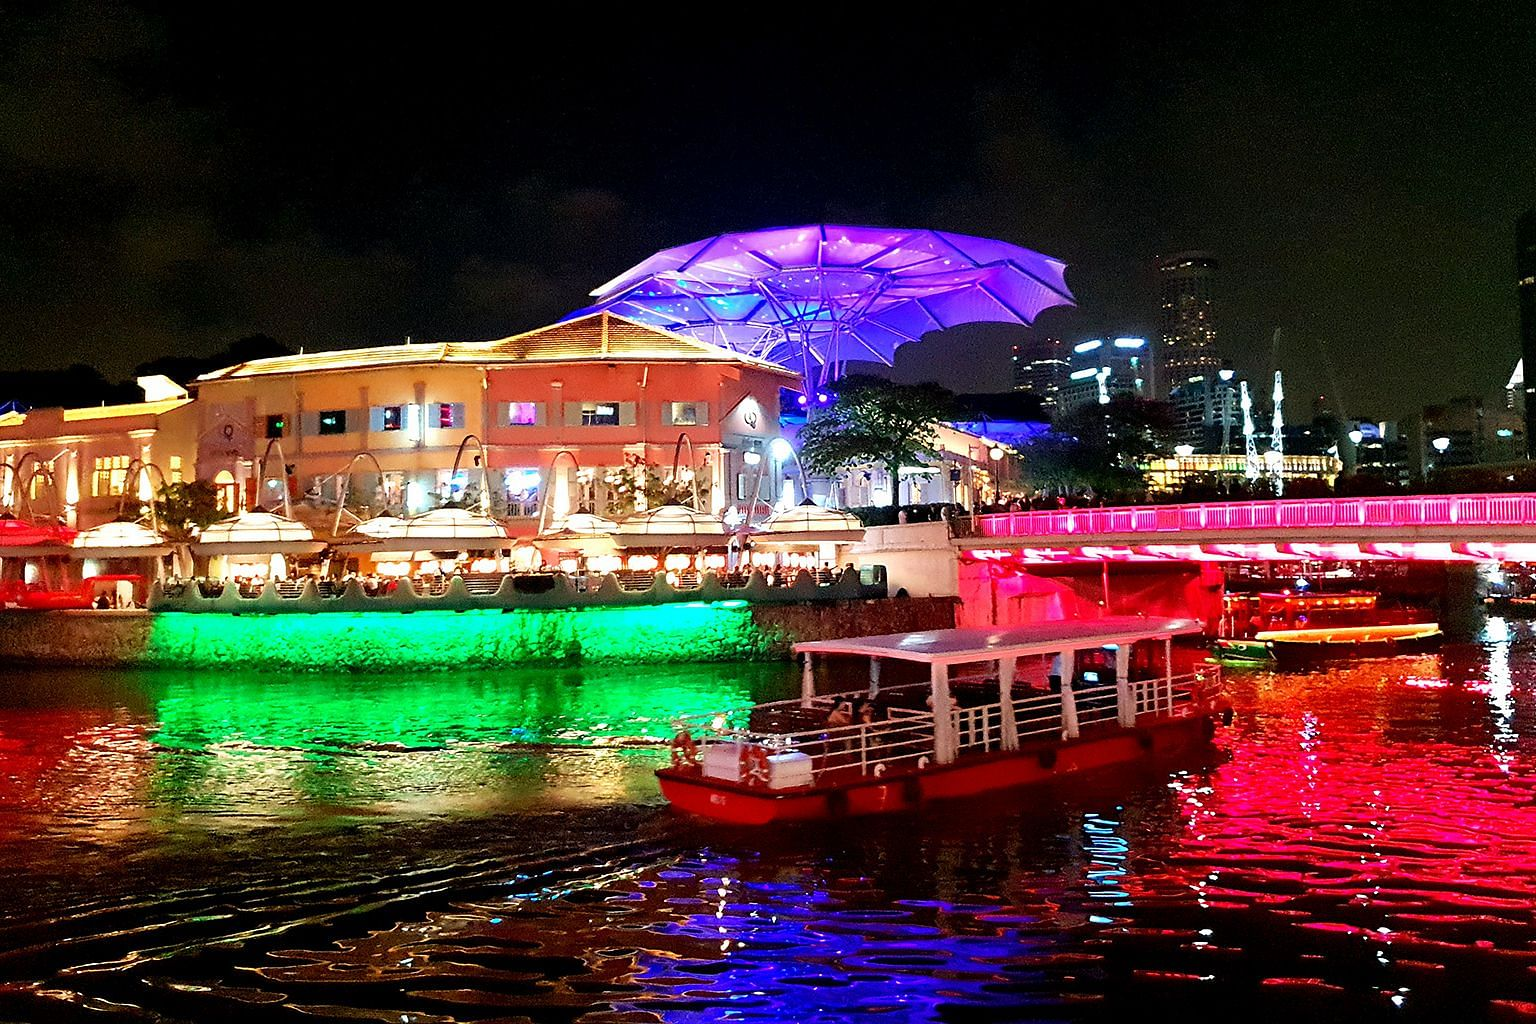 For Week 4 of the After Dark Challenge, the location will be the bright and vibrant Clarke Quay.